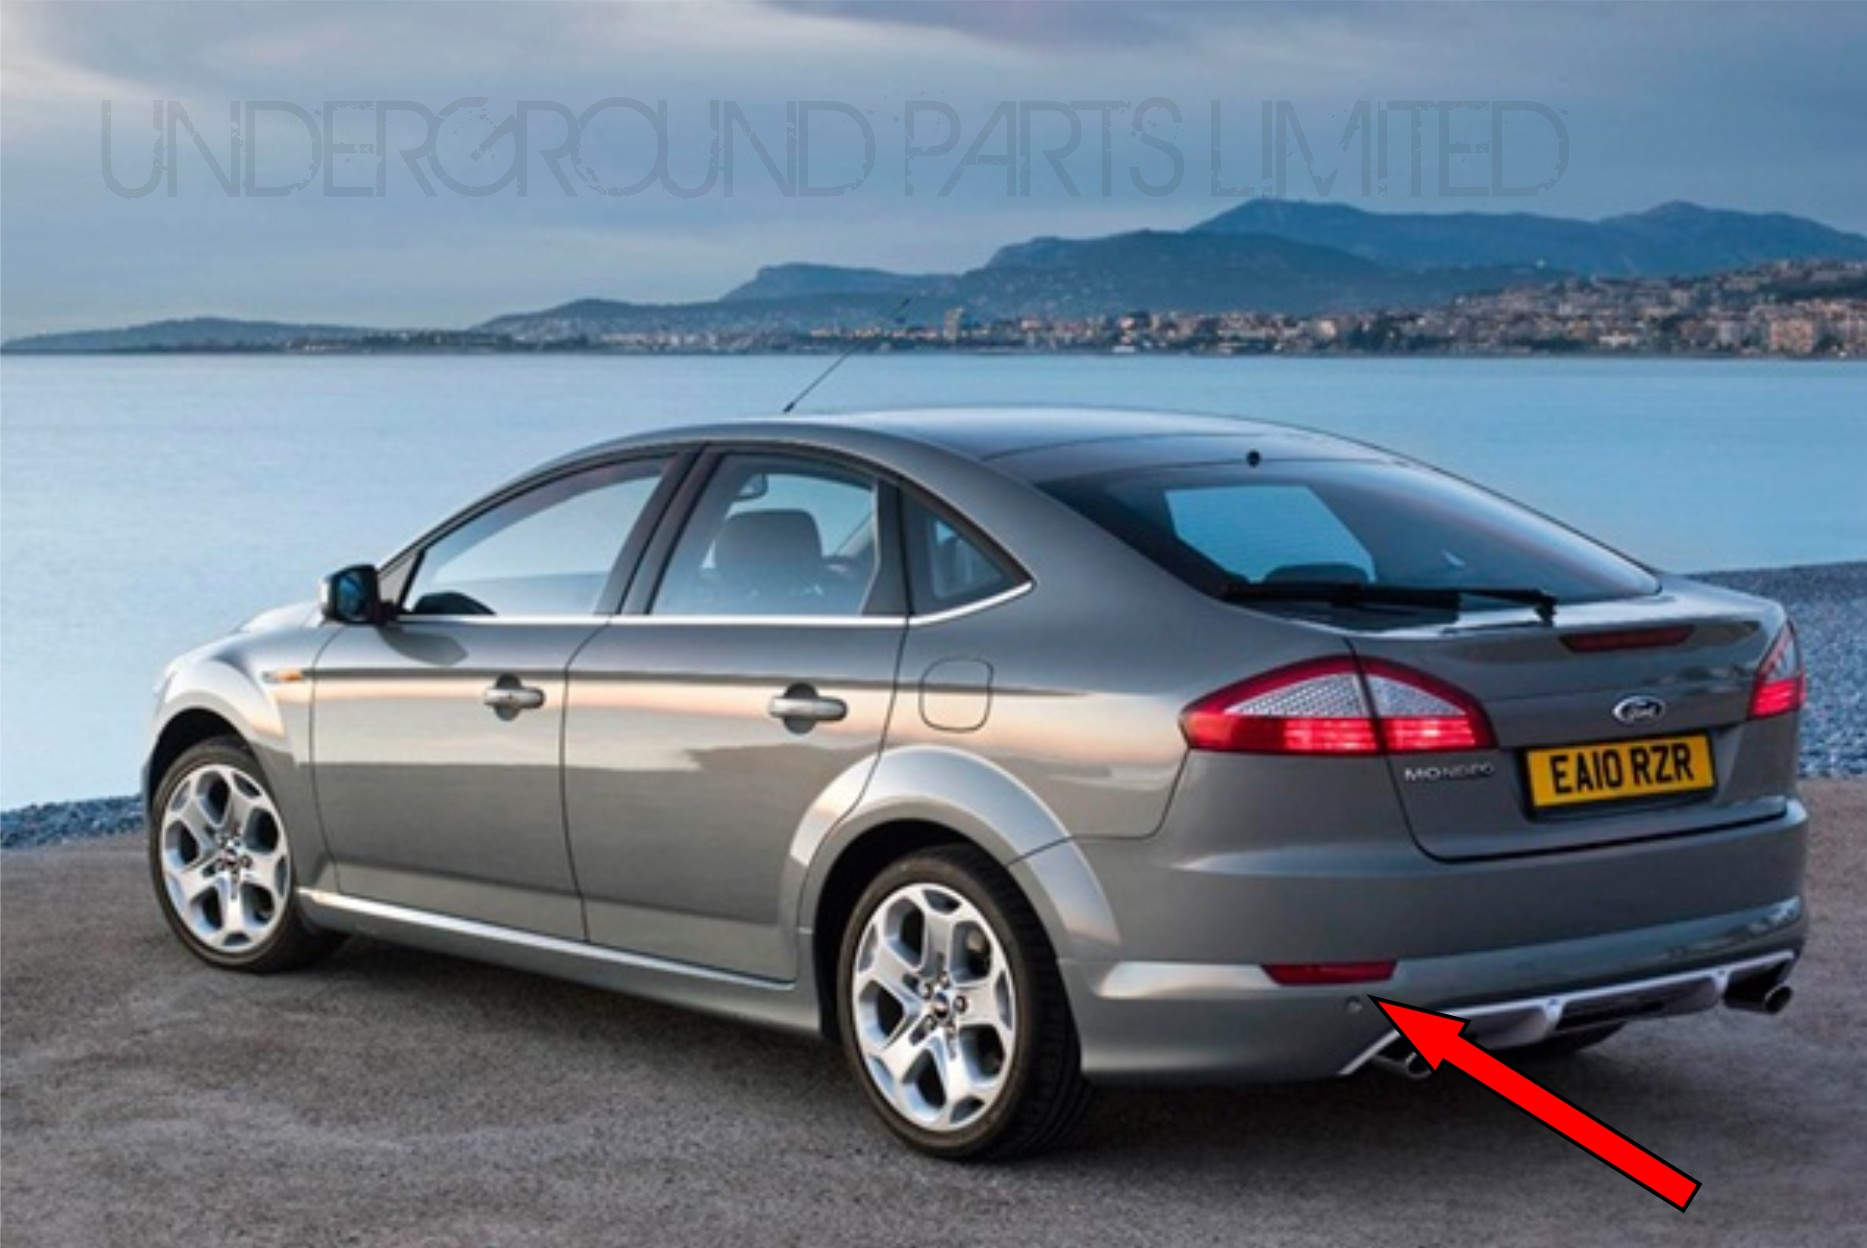 2007 ford mondeo iv hatchback pictures information and specs auto. Black Bedroom Furniture Sets. Home Design Ideas